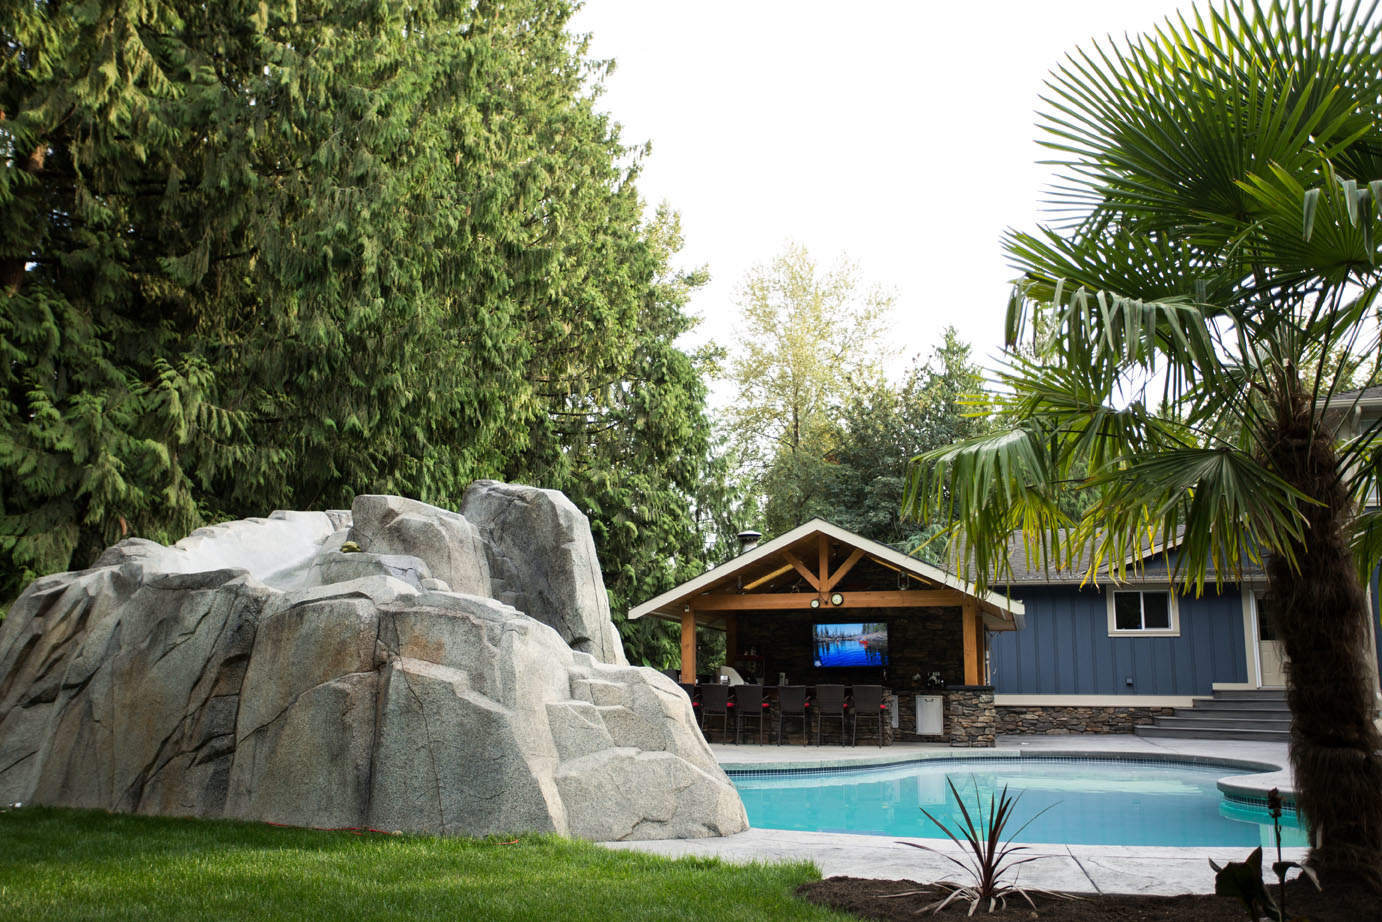 Custom artificial rock work outdoor with swimming pool